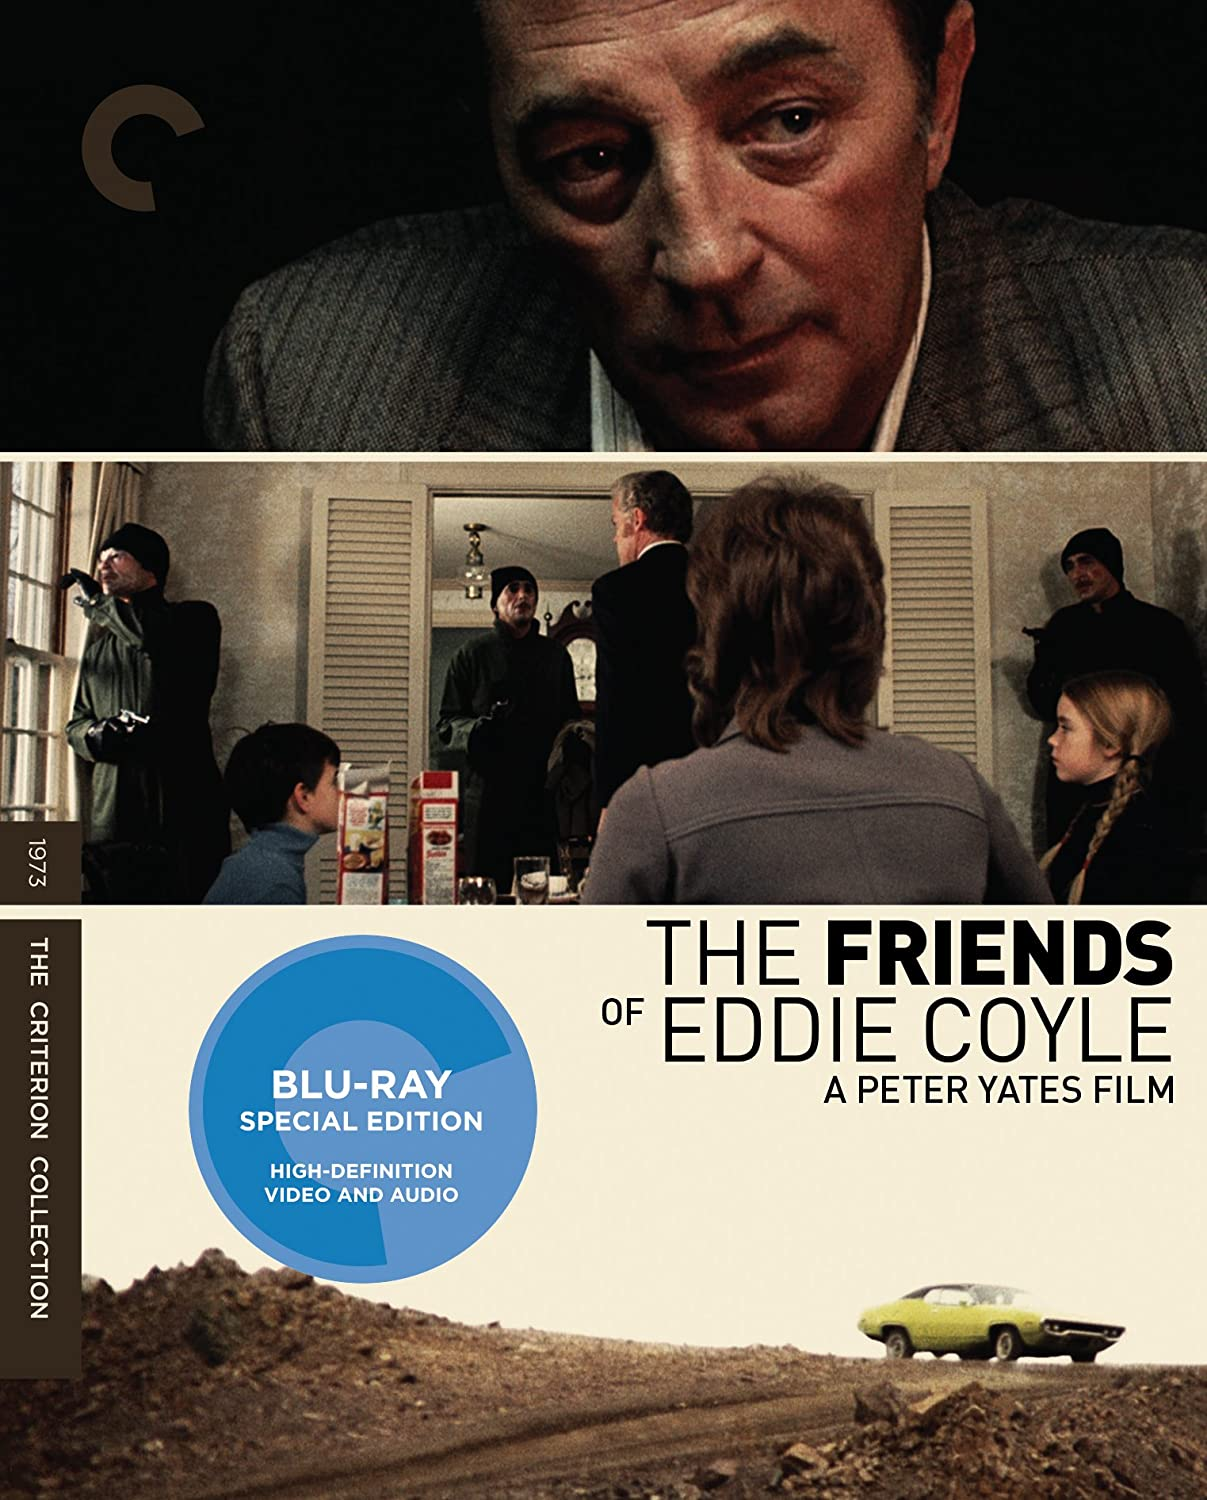 com the friends of eddie coyle blu ray peter boyle com the friends of eddie coyle blu ray peter boyle richard robert mitchum peter yates movies tv